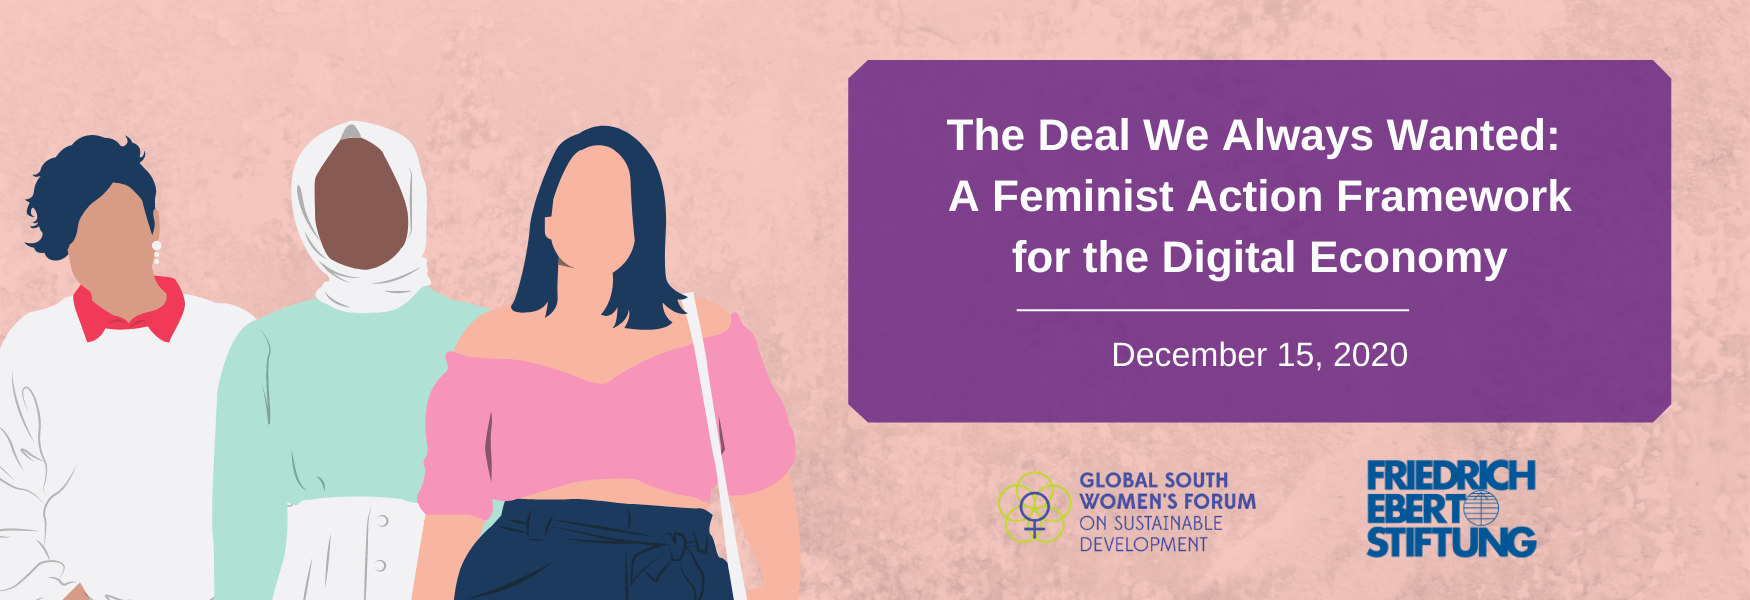 The Deal We Always Wanted: A Feminist Action Framework for the Digital Economy